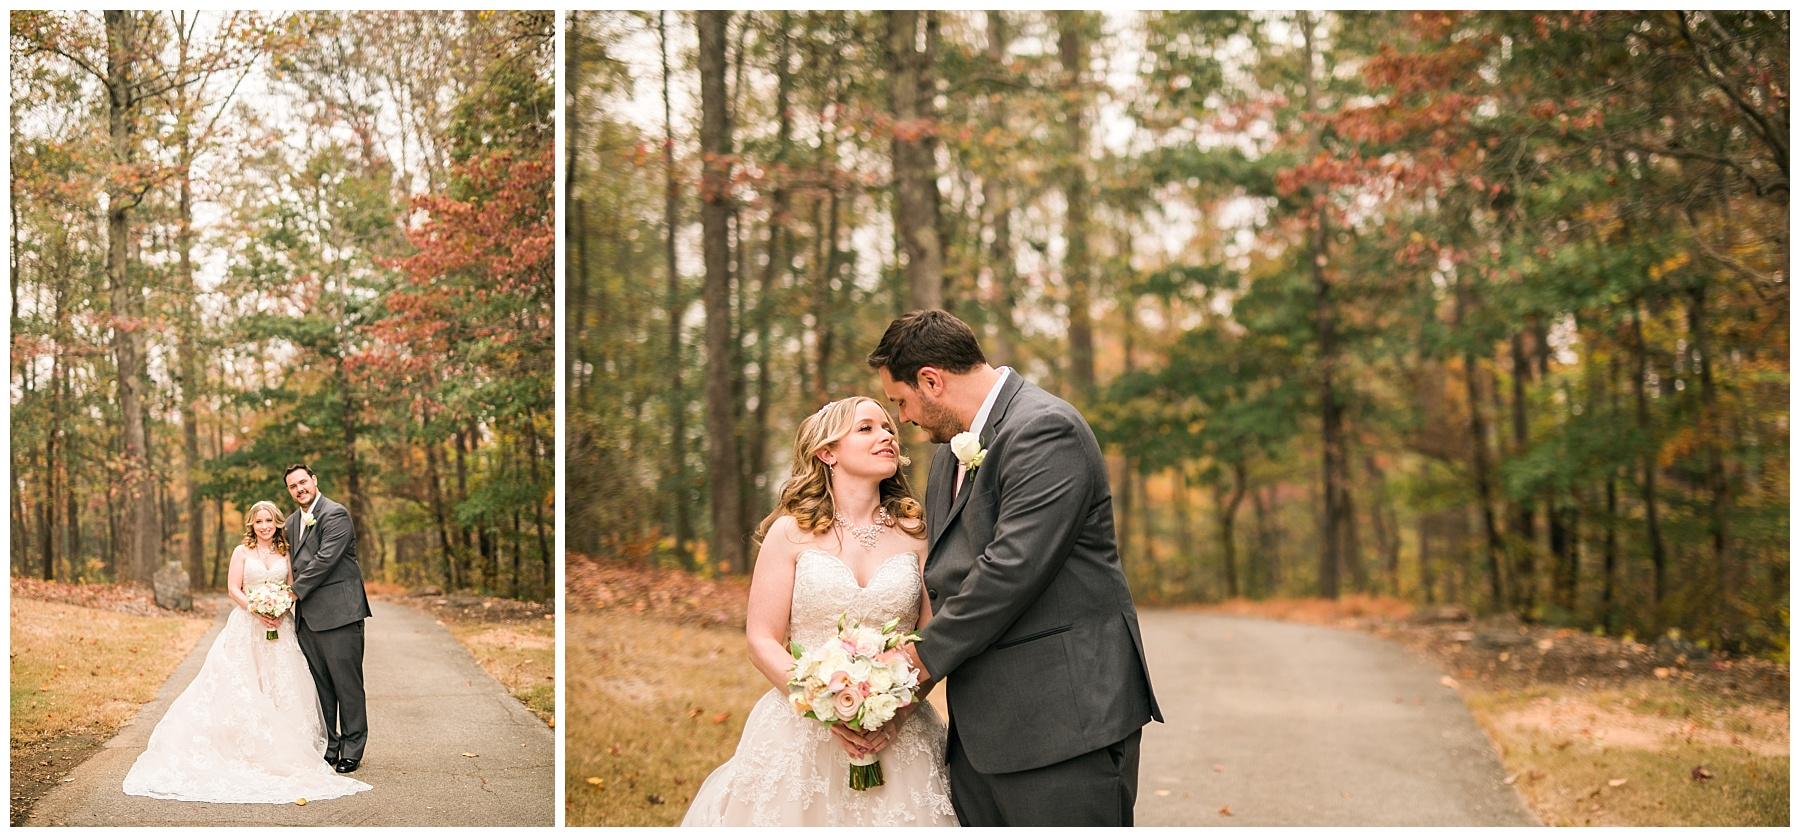 nothing more beautiful for a wedding than Fall in Georgia! Especially in north georgia!